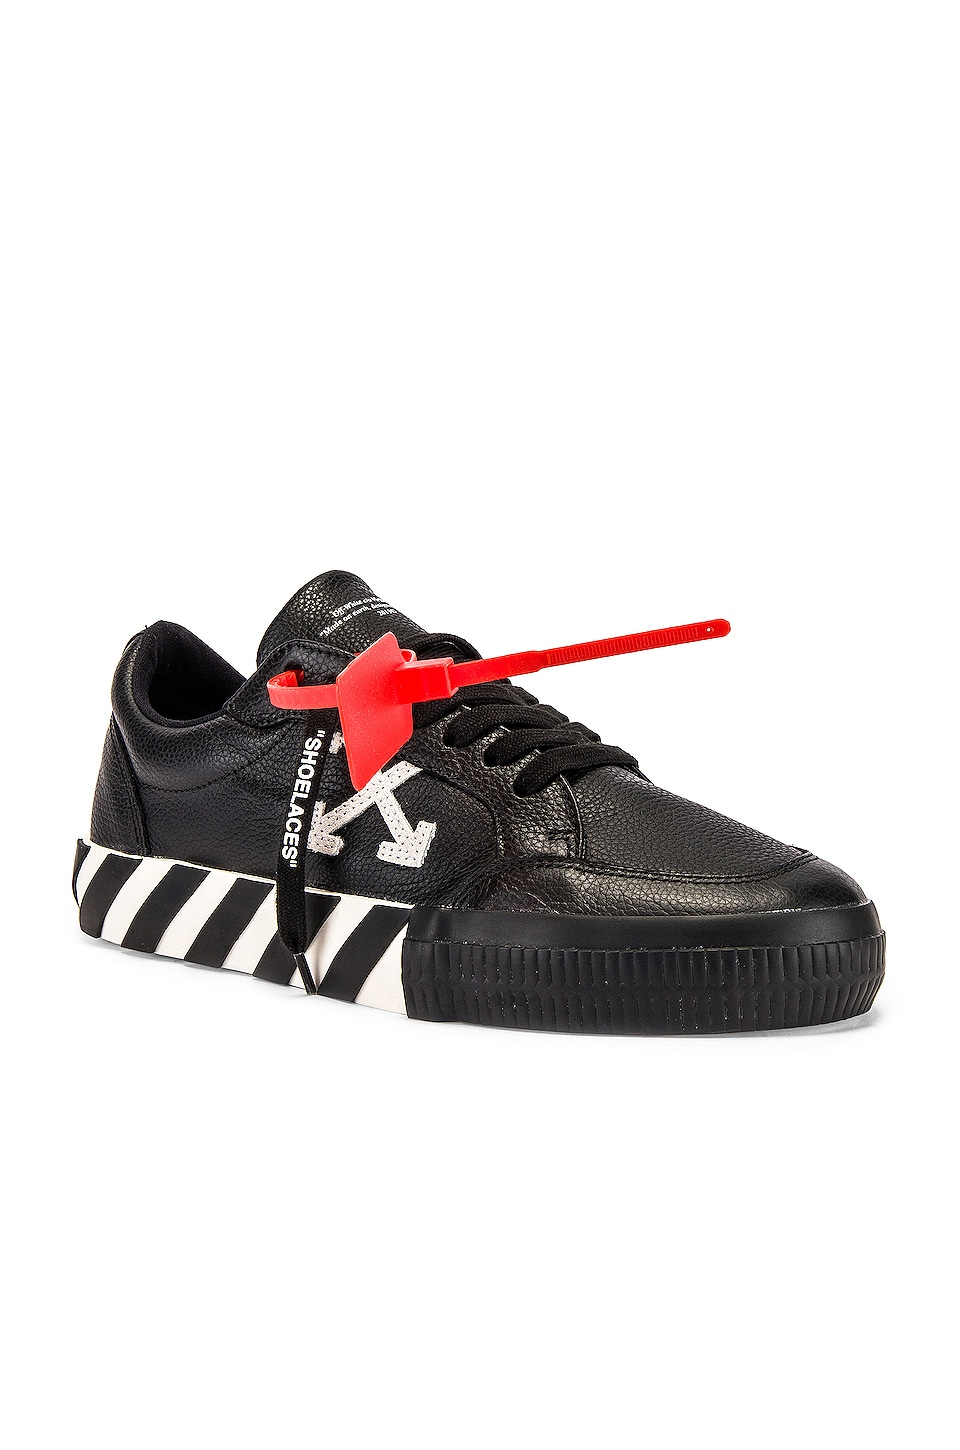 OFF-WHITE Low Vulcanized Sneaker in Black & White